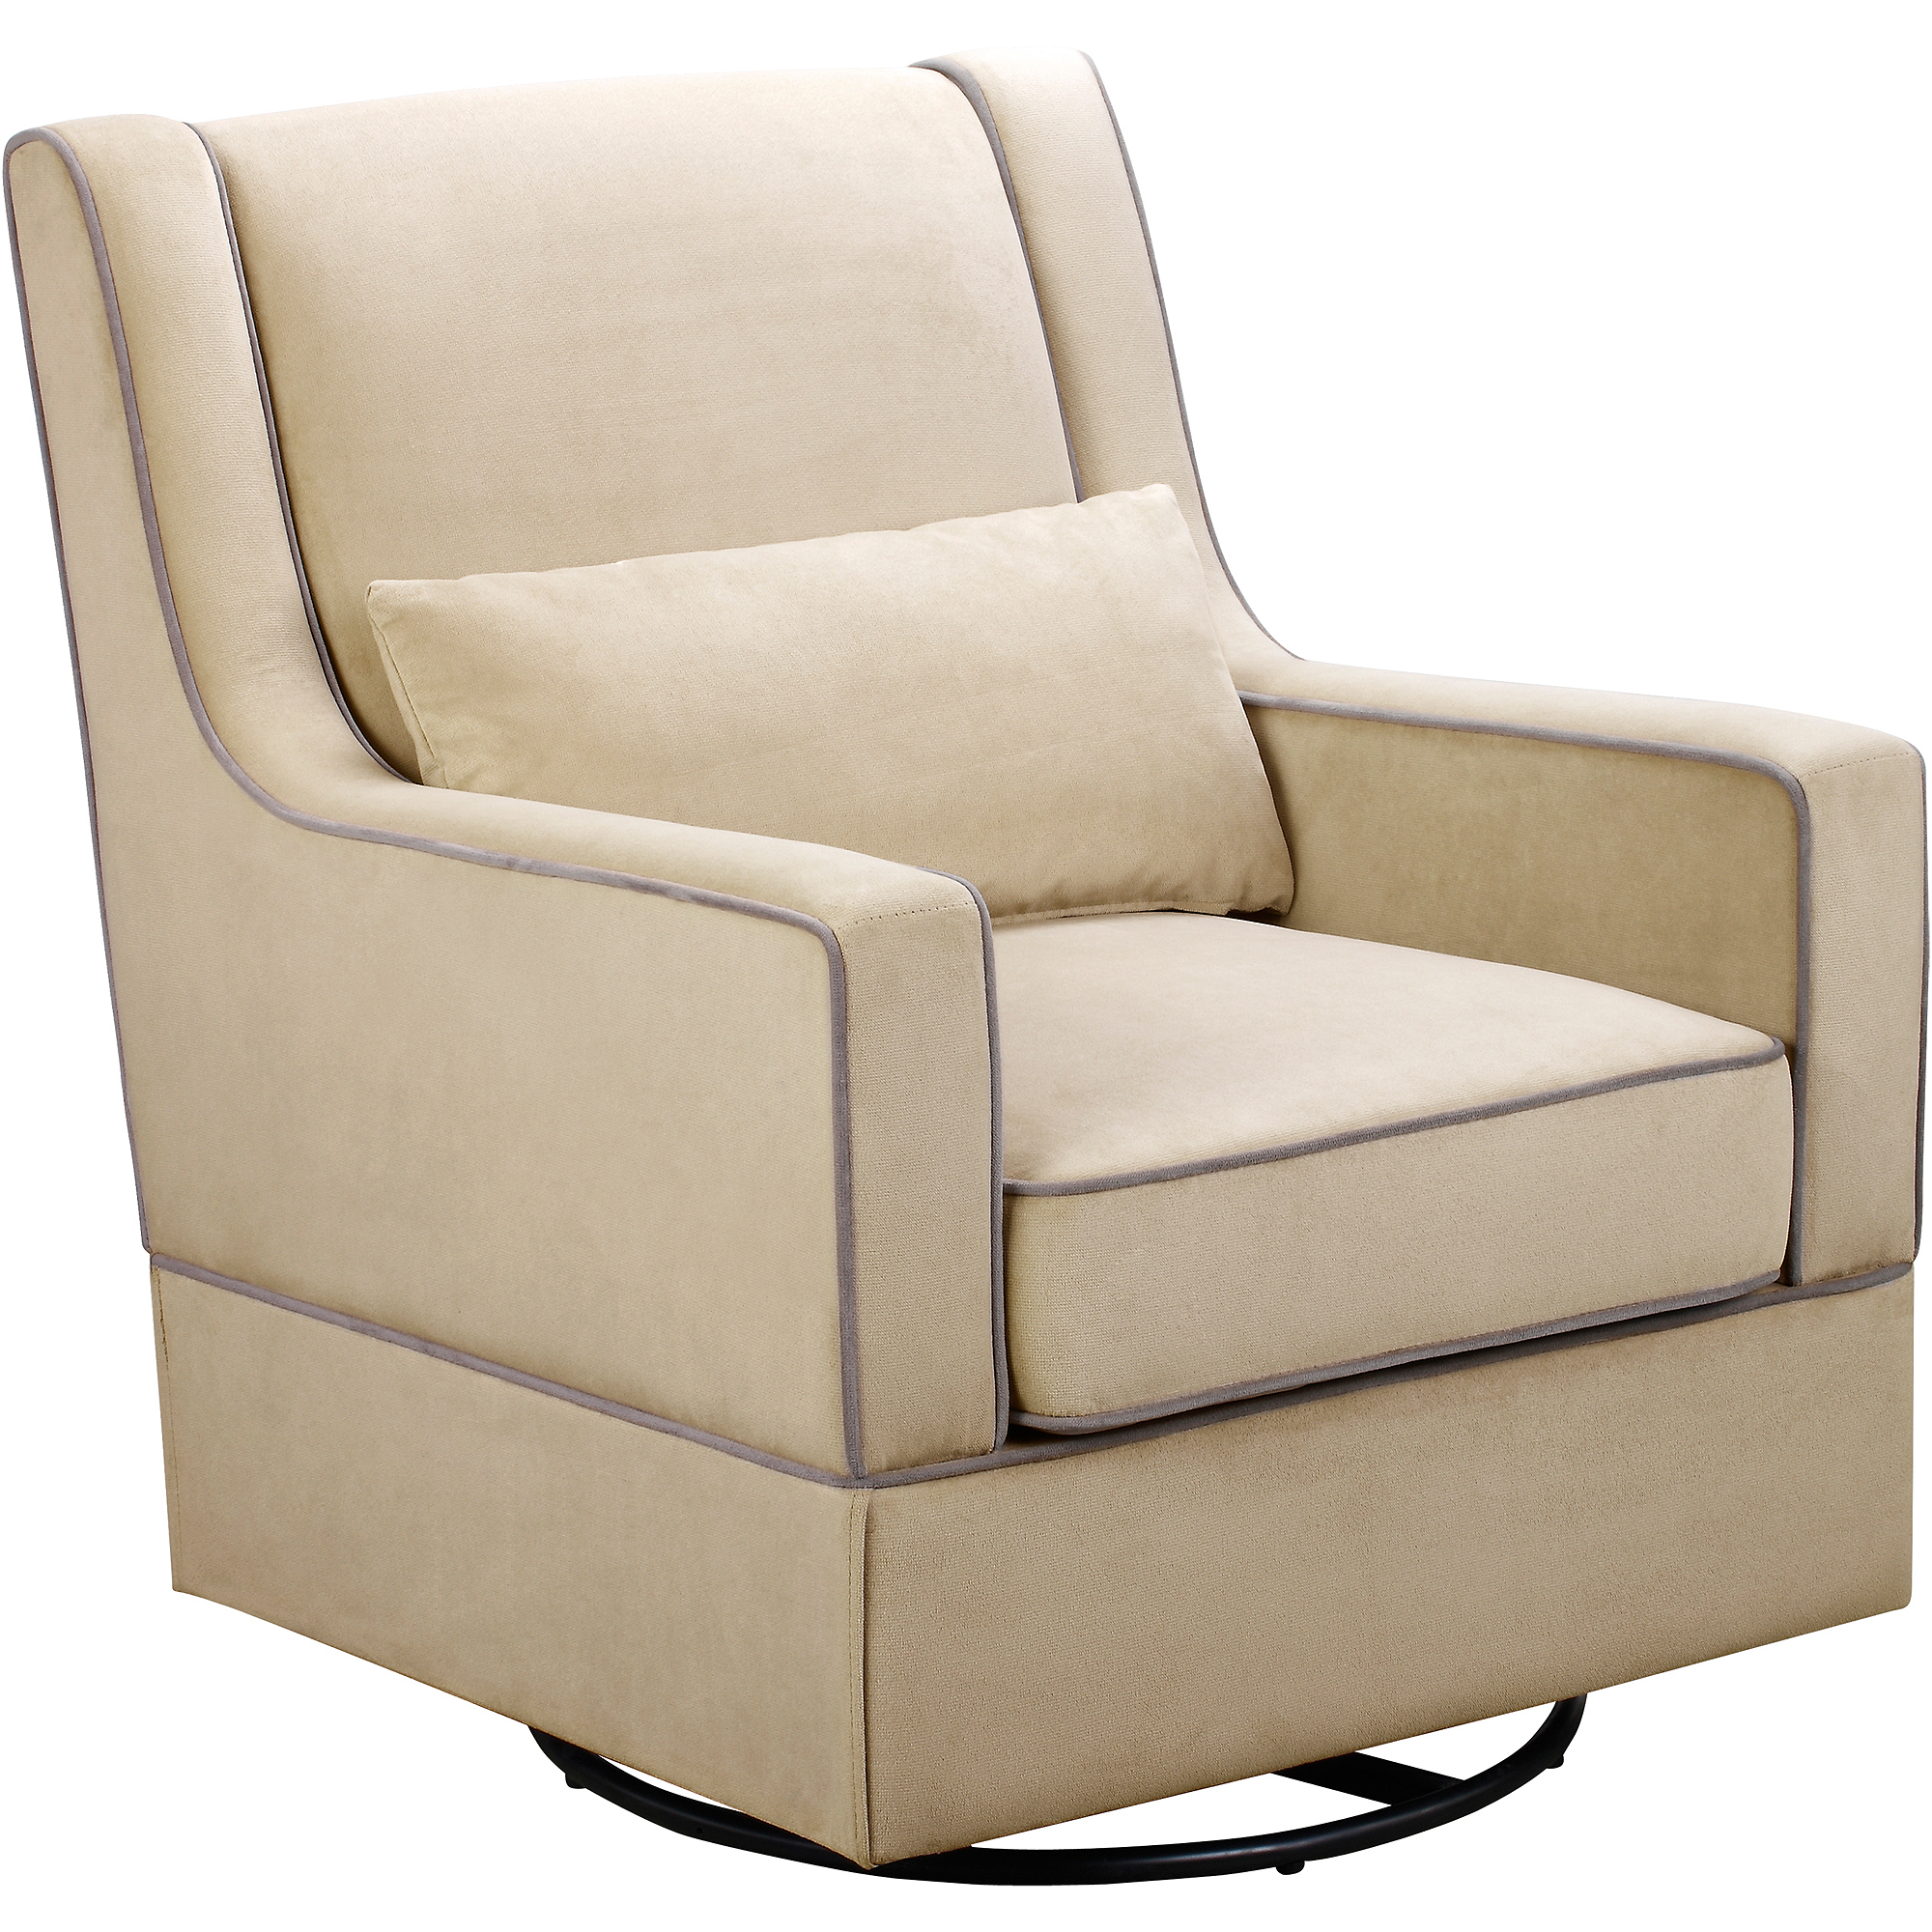 Baby Relax Sydney Swivel Glider – Walmart For Abbey Swivel Glider Recliners (View 18 of 20)